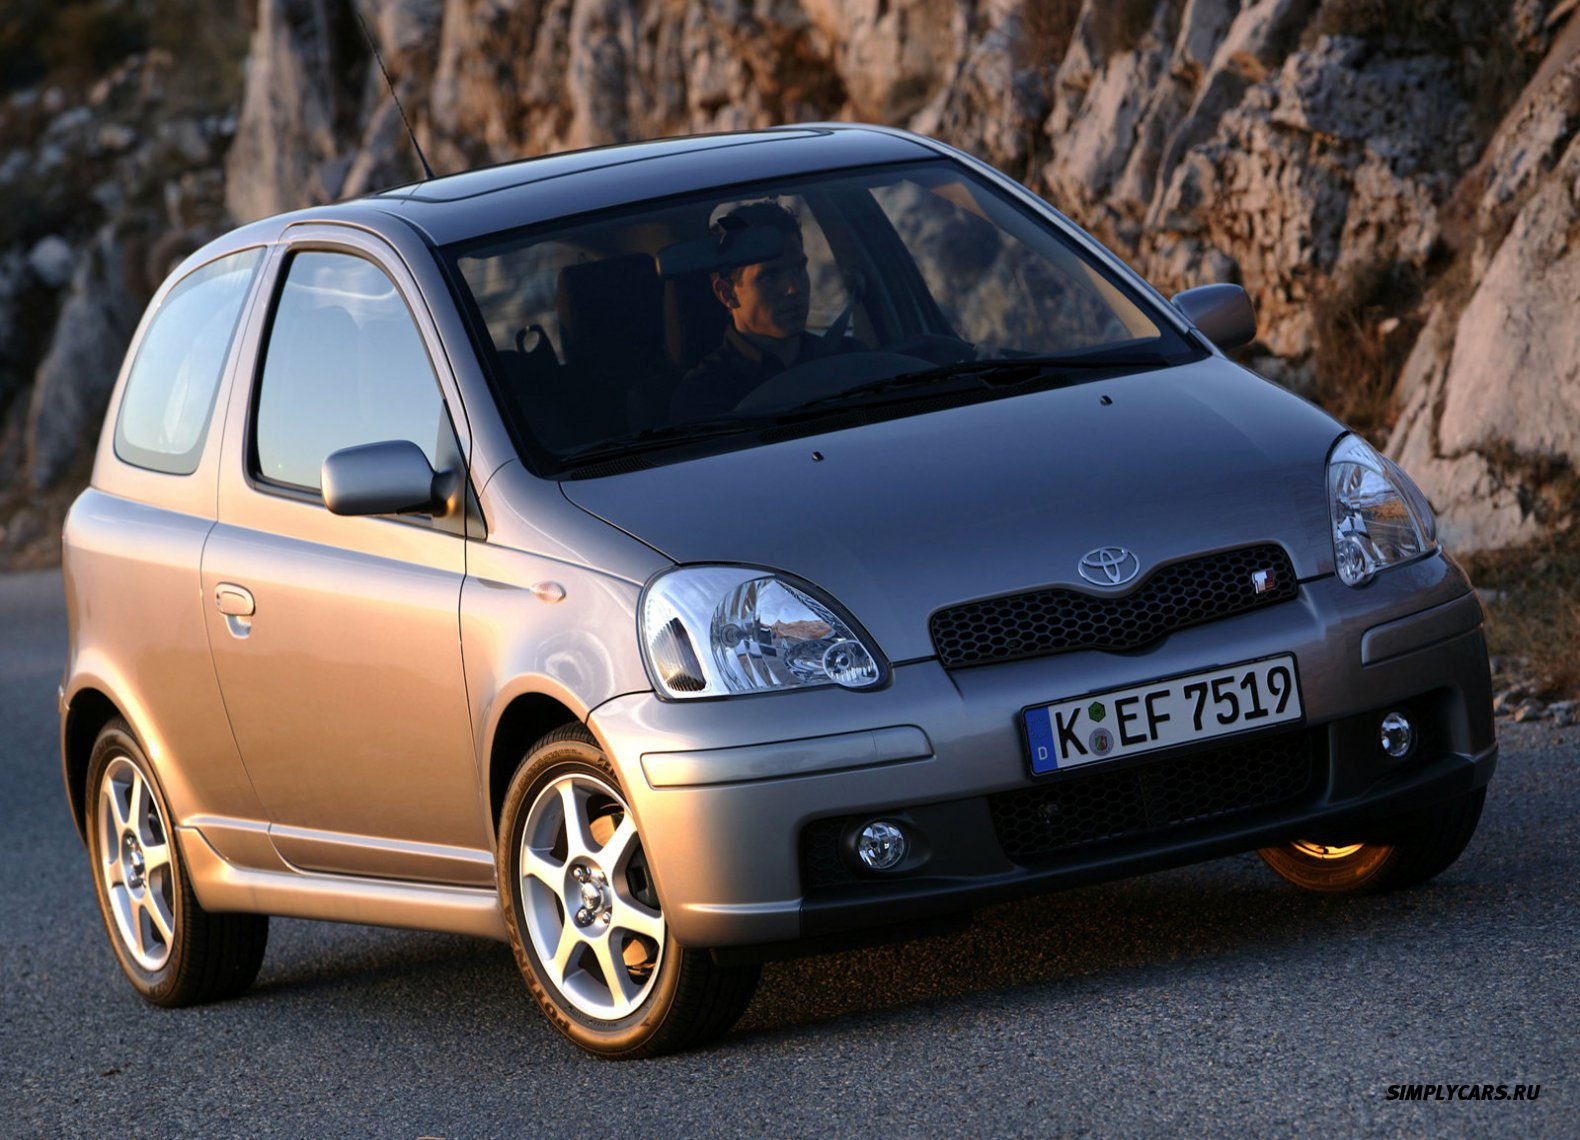 Toyota Yaris Reviews - Toyota Yaris Price, Photos, and ...